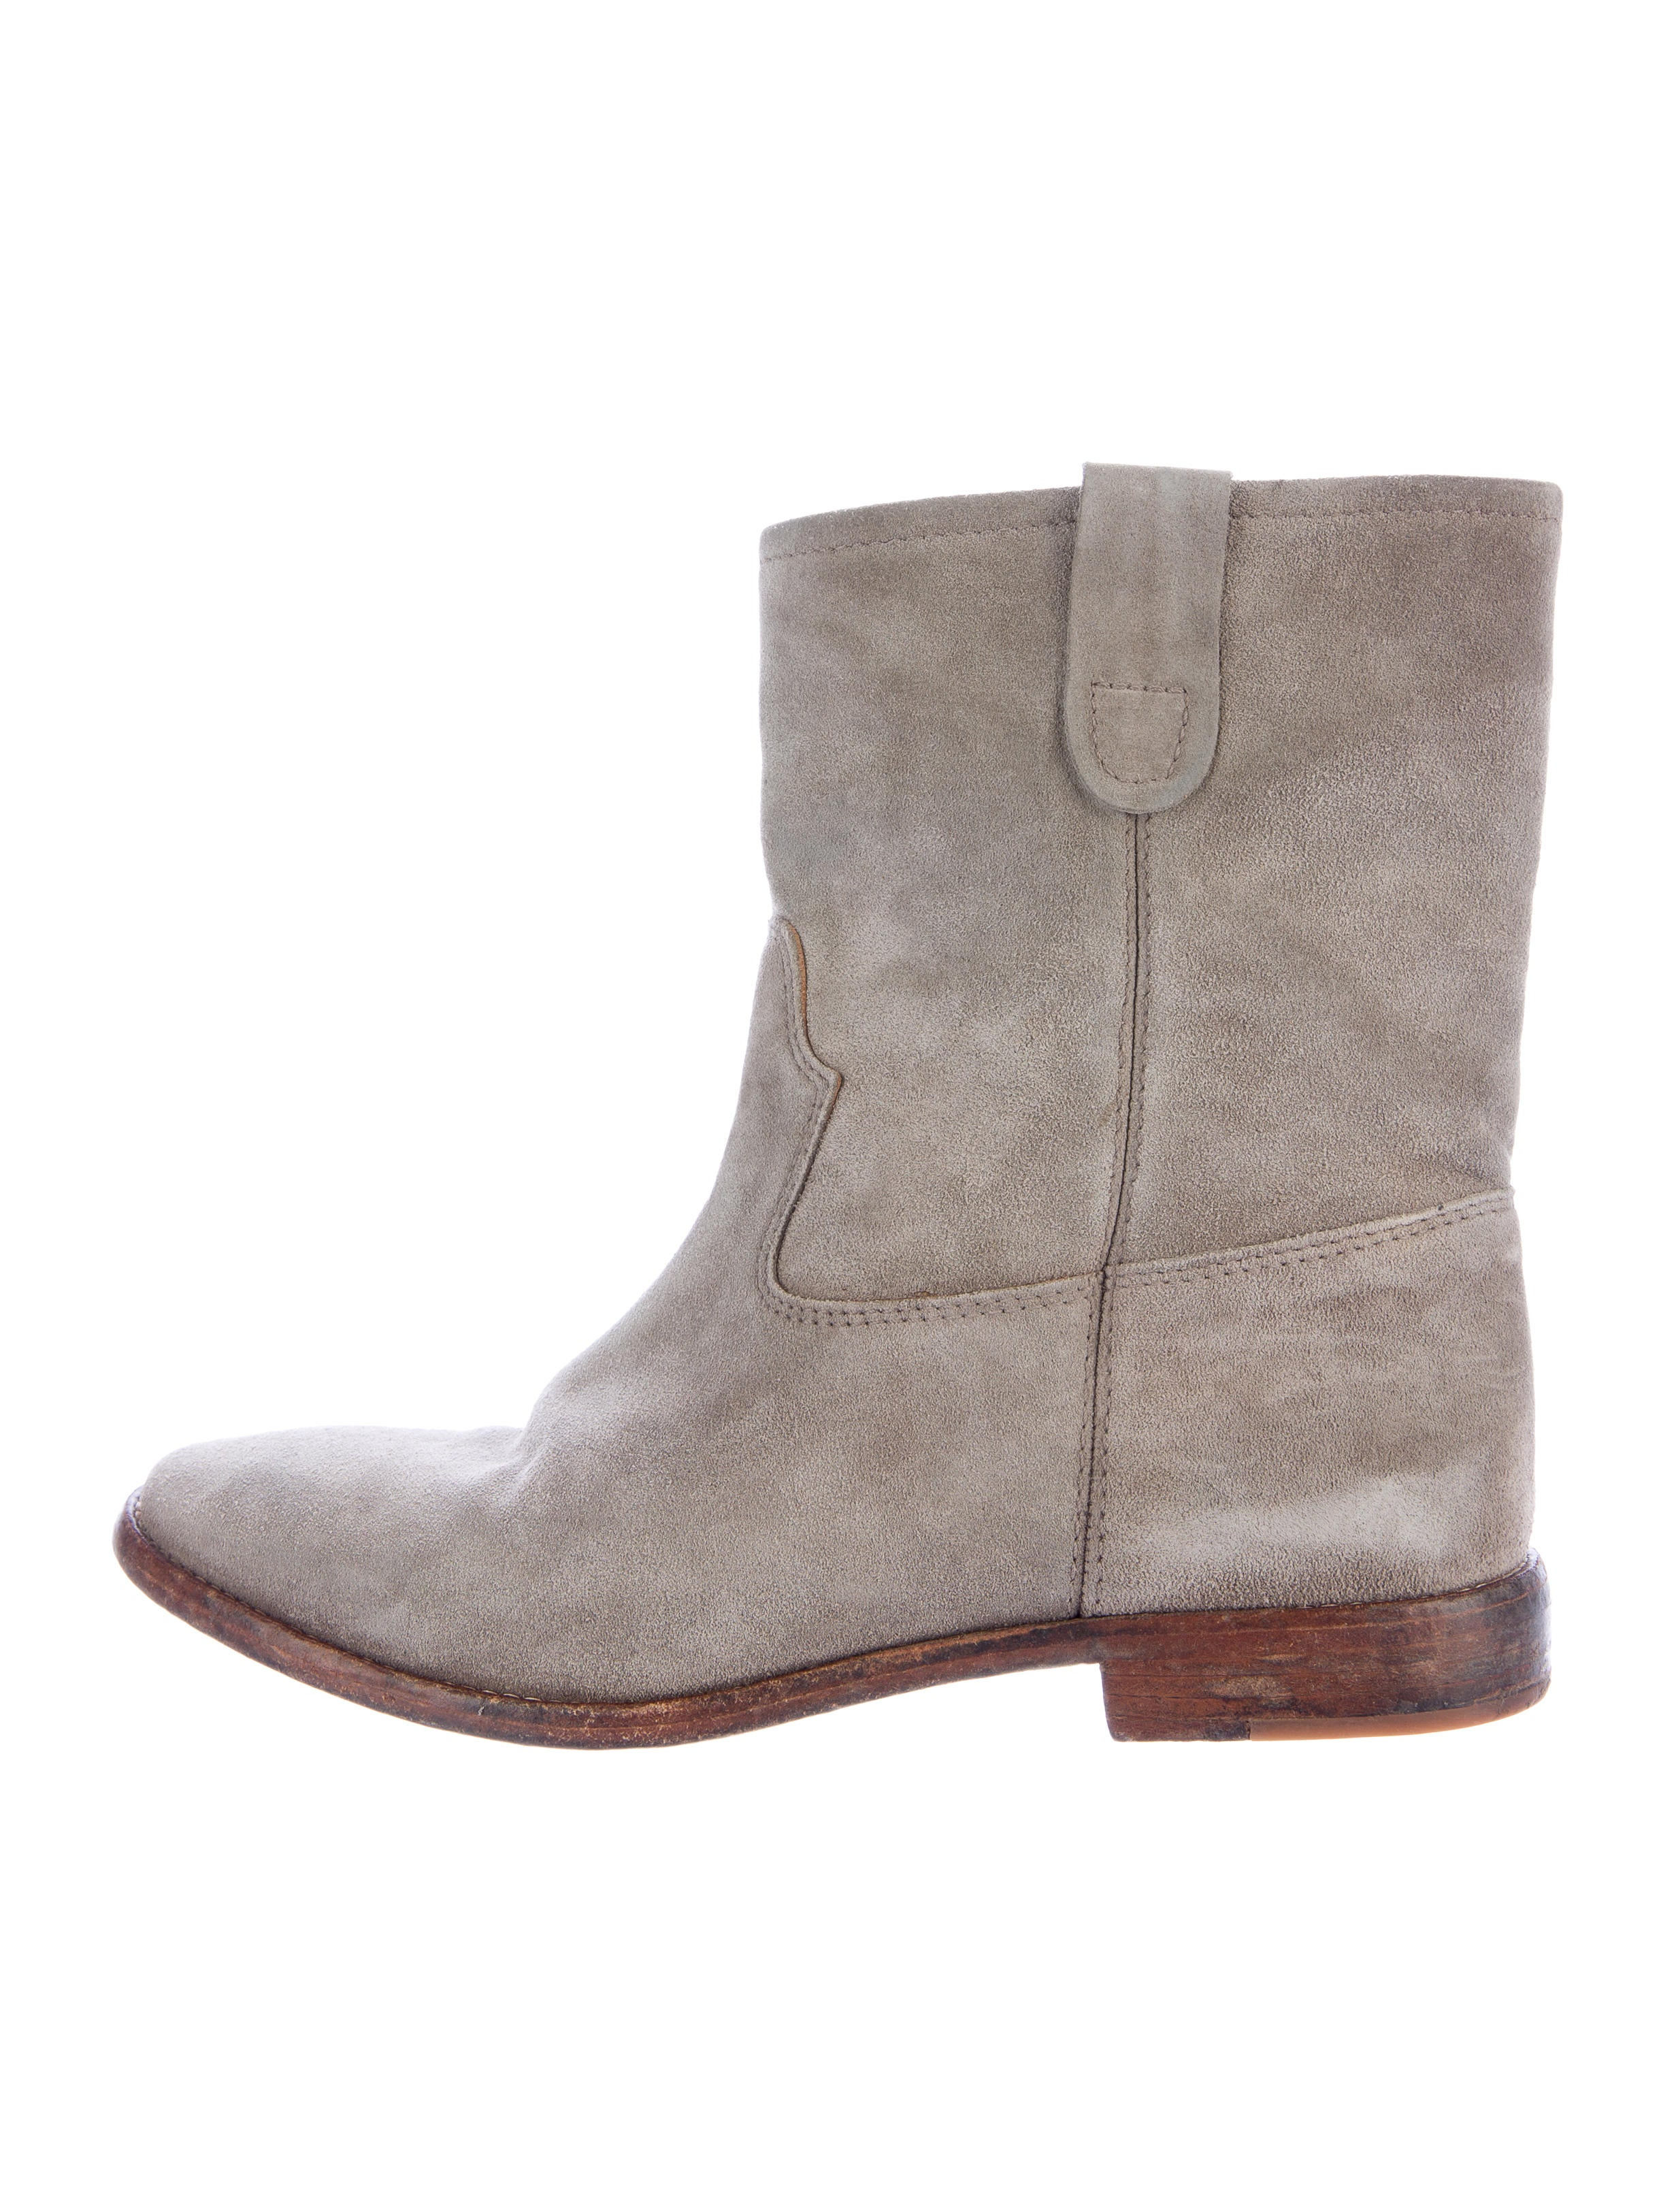 marant crisi suede ankle boots shoes isa40131